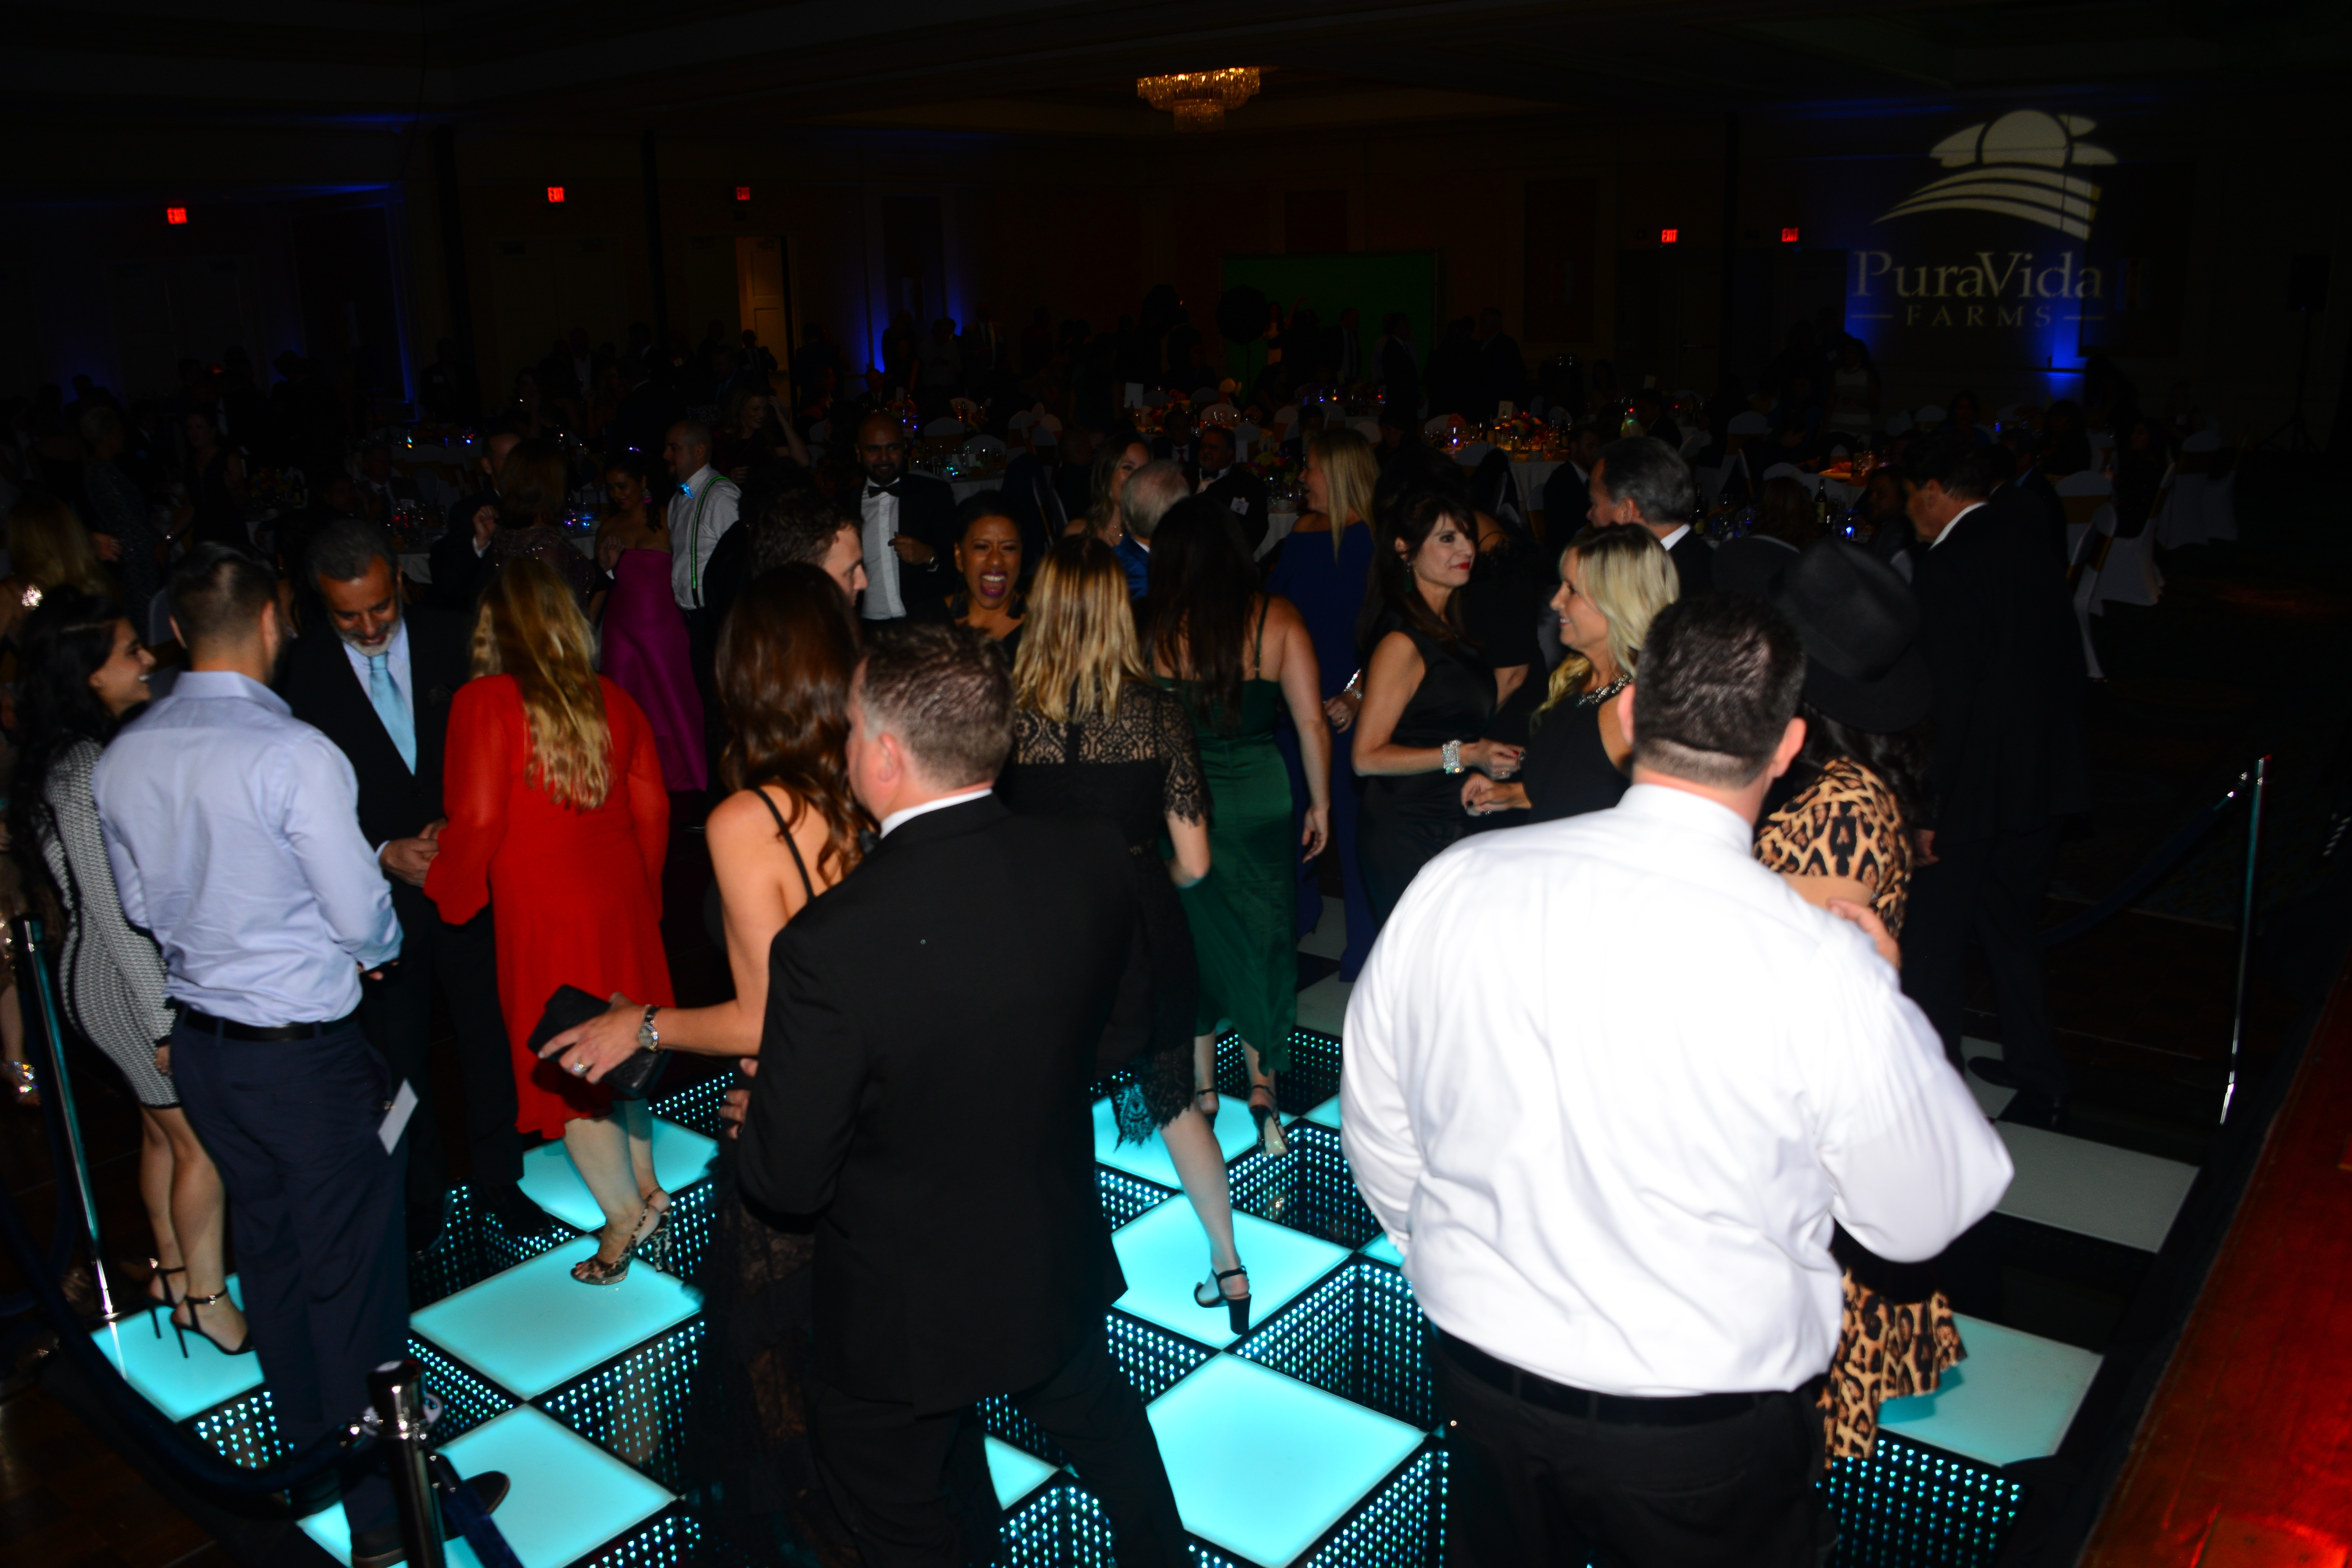 Attendees hitting the dance floor after the evening program.